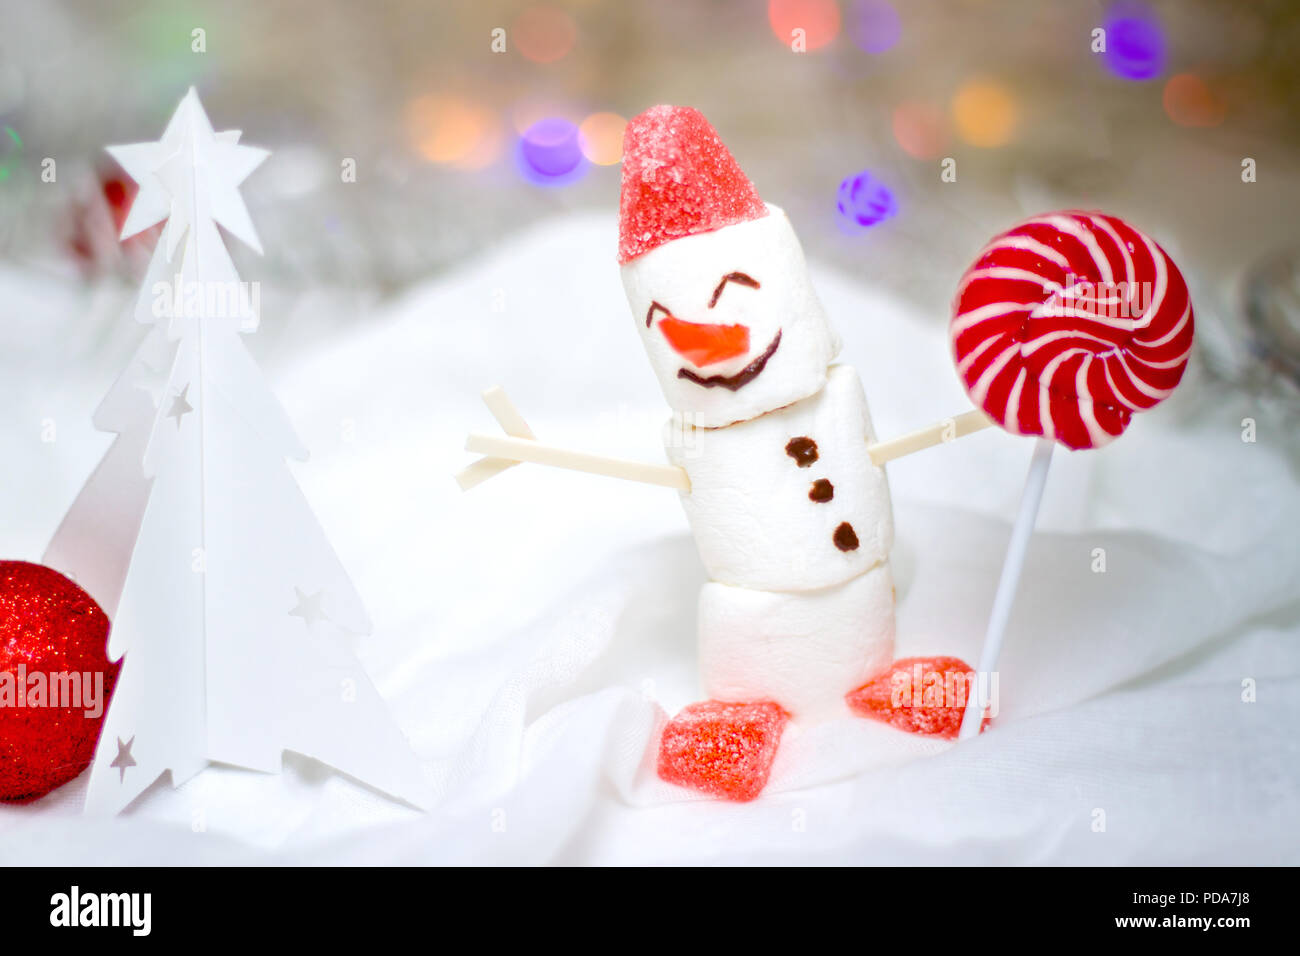 holidays winter and celebration concept christmas and new year card with snowman from marshmallow and red lollipop and a white christmas tree made